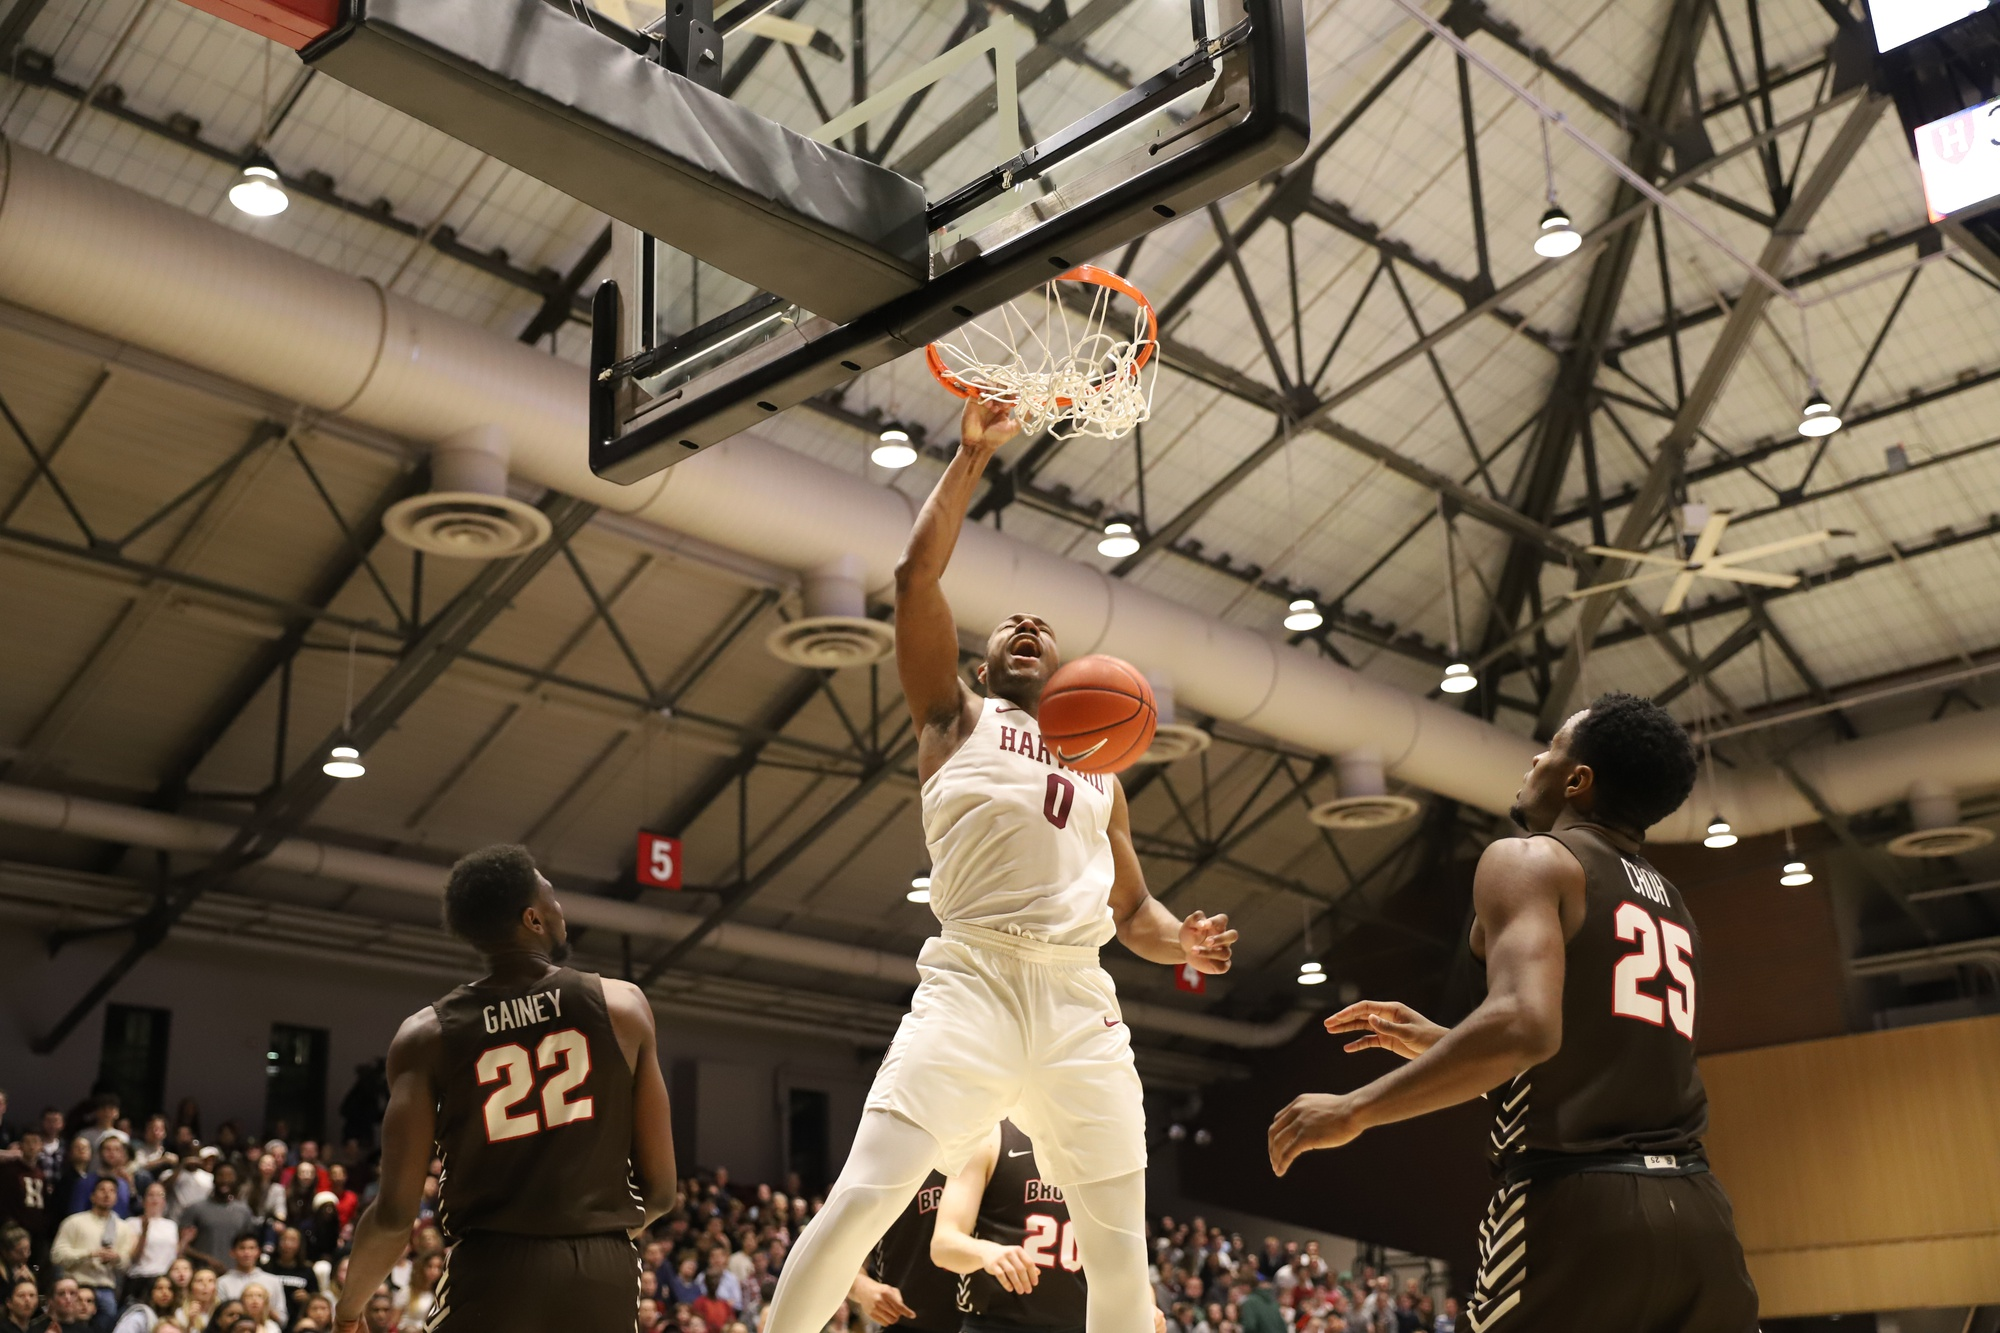 Chris Lewis dunks for two of his 13 points. He was one of seven Harvard seniors honored on senior night at Lavietes Pavilion, but his efficient performance was not enough to extend the Crimson's six game winning streak.